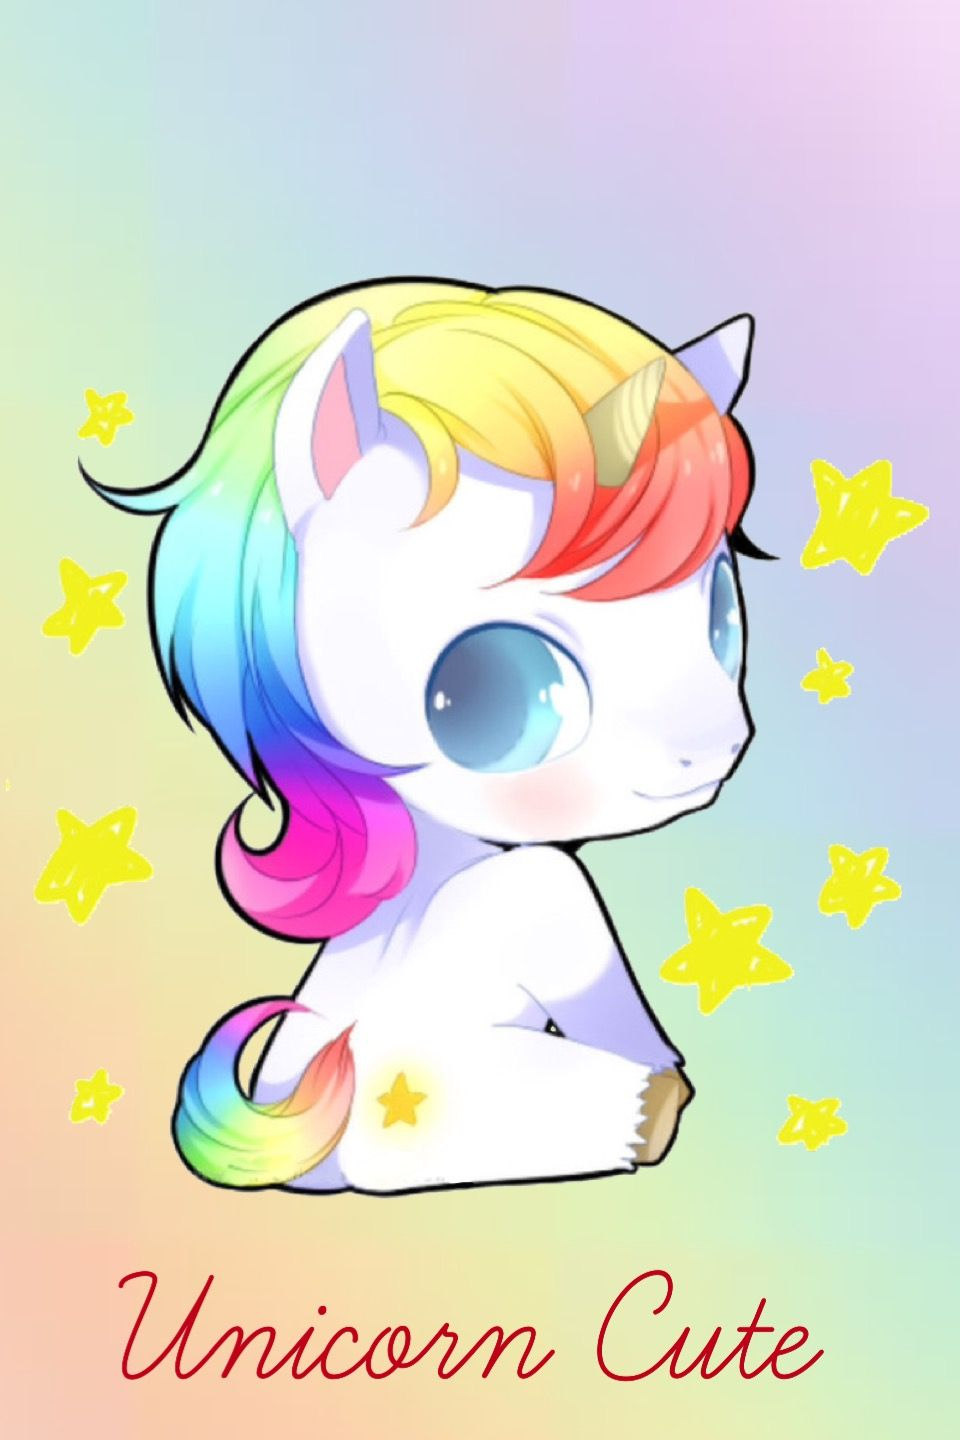 Unicorn Unicorn wallpaper cute, Unicorn wallpaper